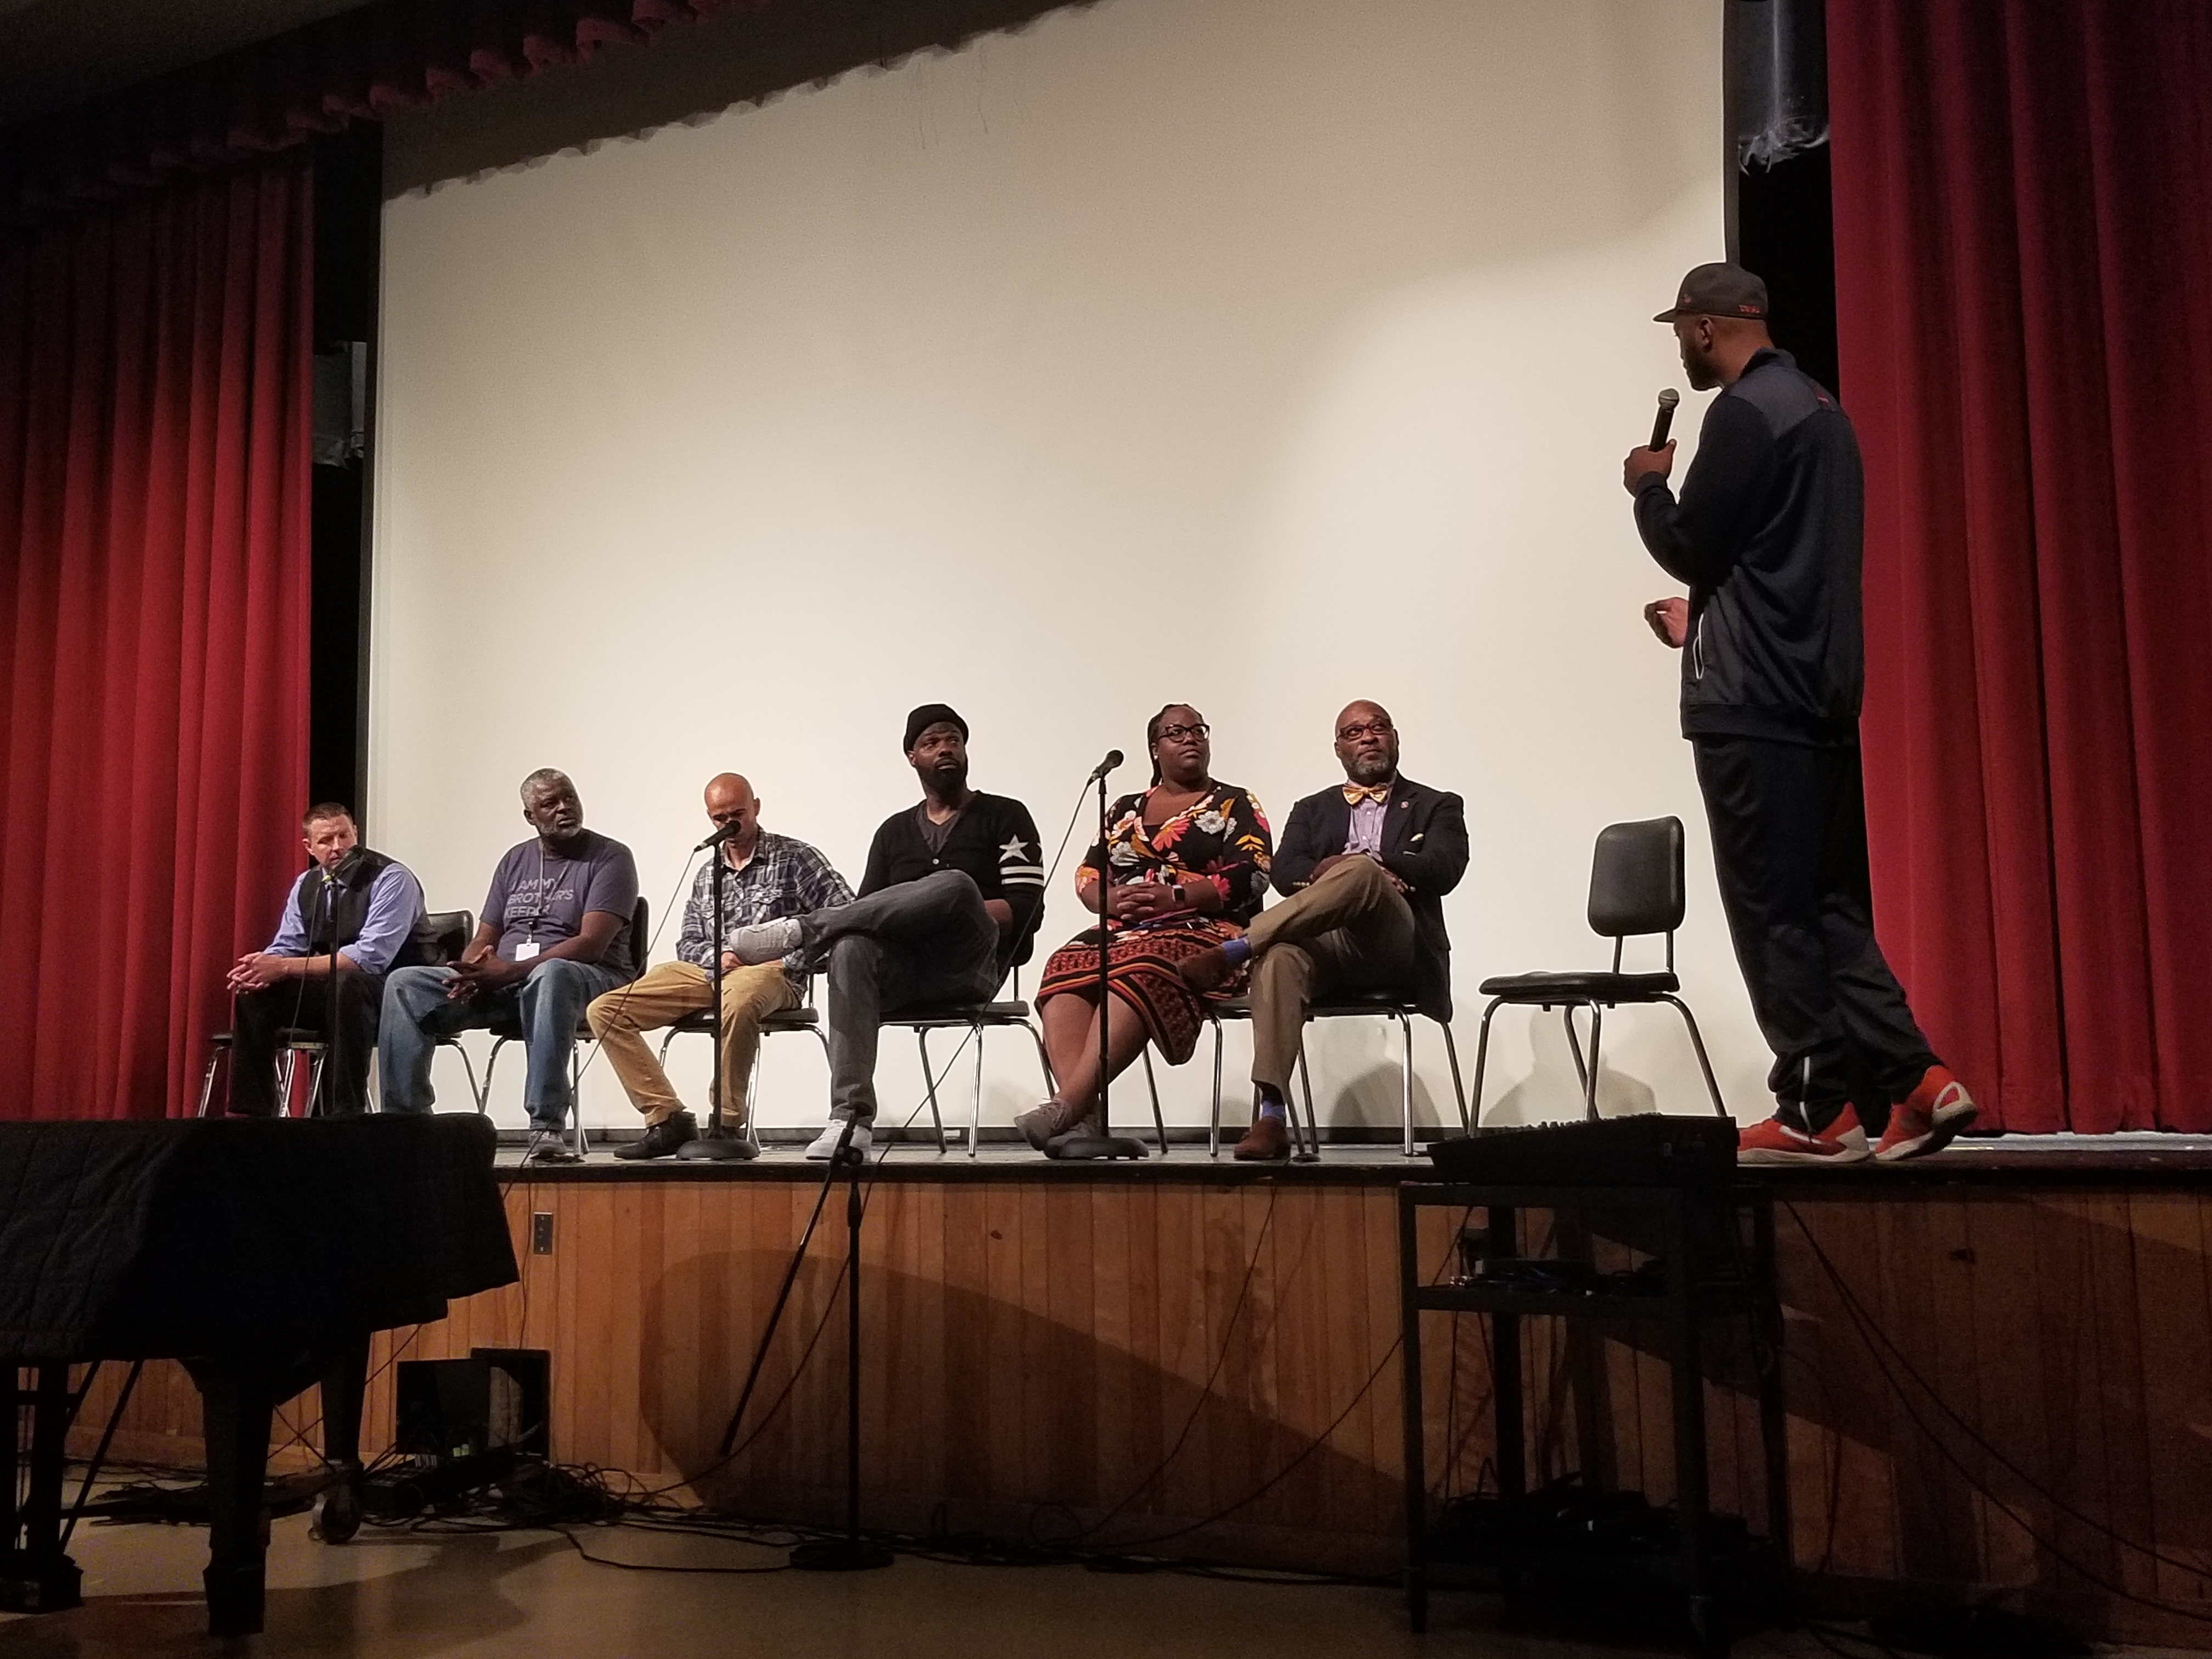 John Wallace facilitating the school-to-prison pipeline panel at the Annual MBK Convening.